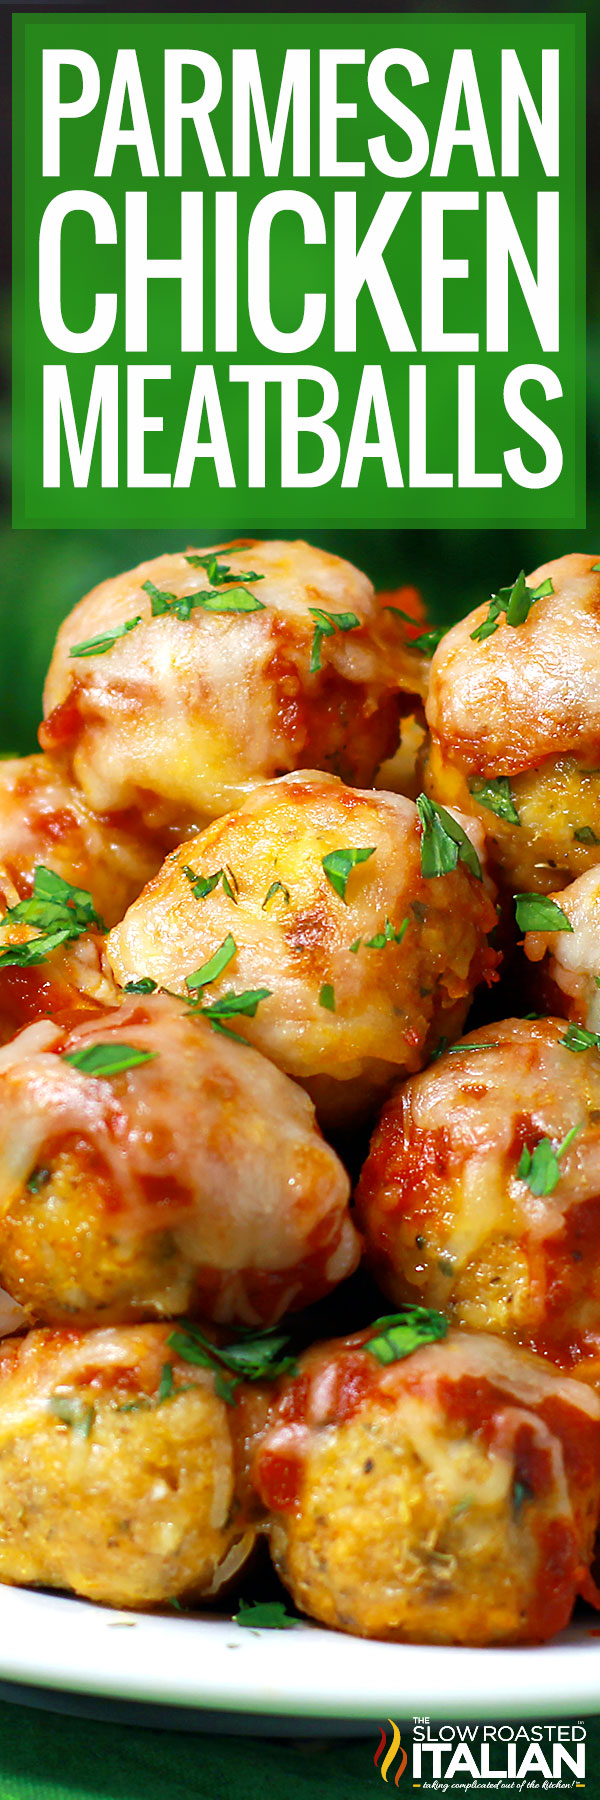 Title text (pictured in a stack): Parmesan Chicken Meatballs Recipe